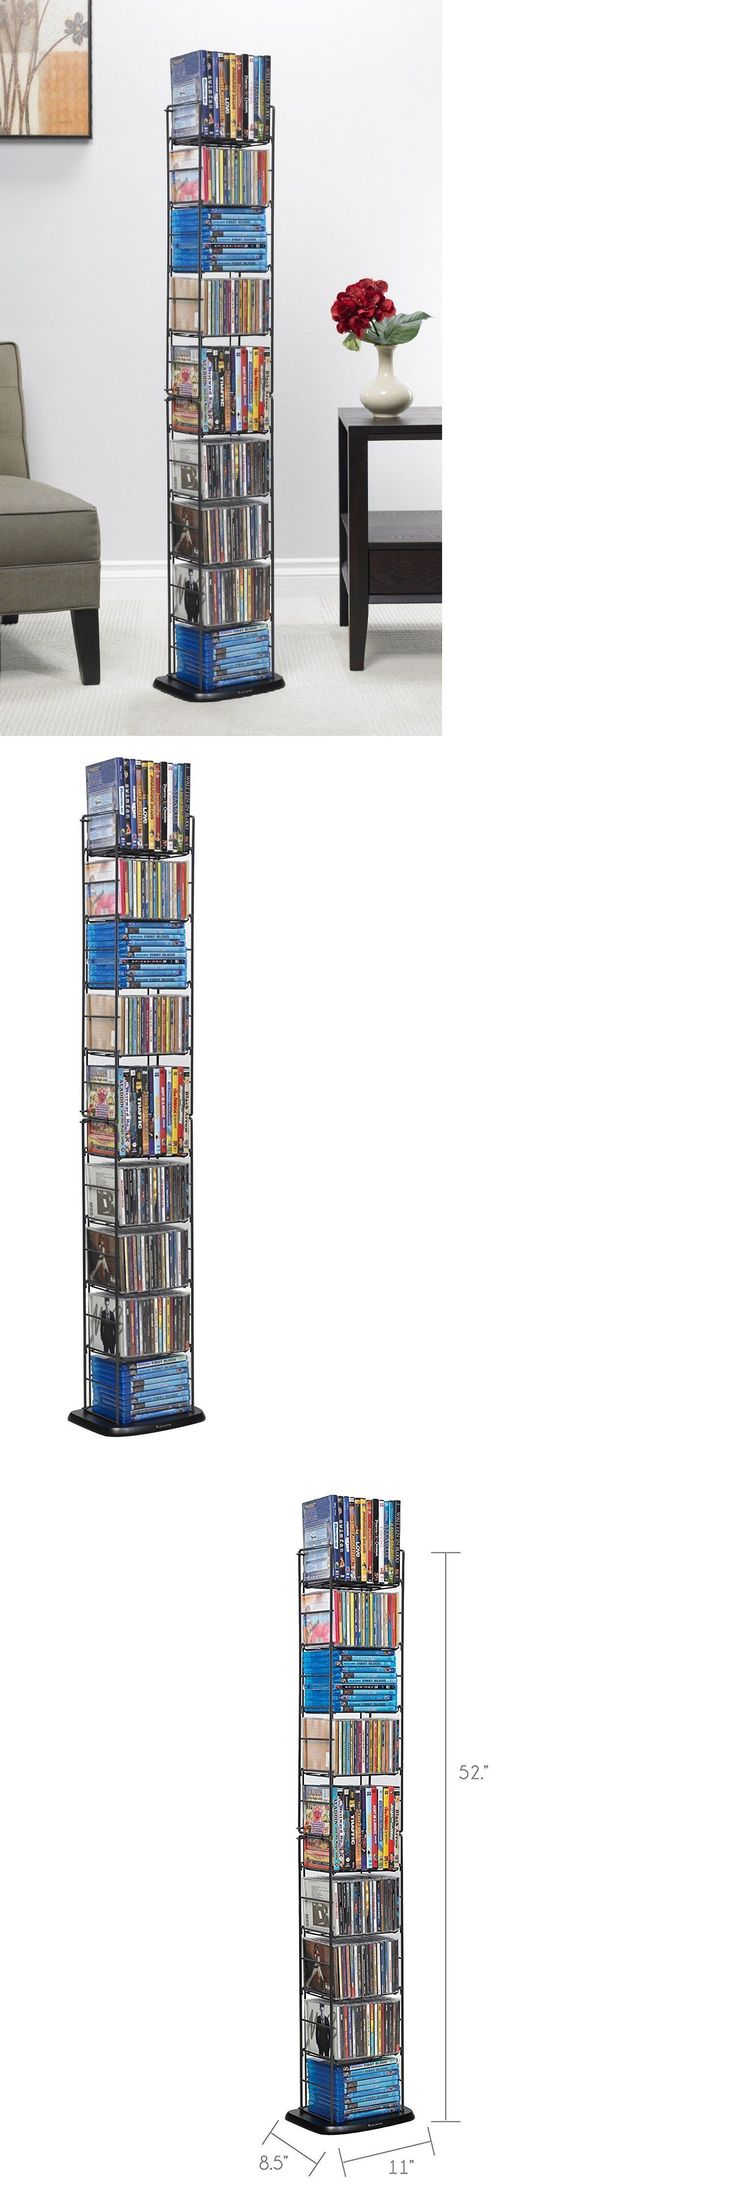 CD and Video Racks 22653: Dvd Media Storage Cd Tower Organizer Folding Rack Shelf Multimedia Stand Holder -> BUY IT NOW ONLY: $34.22 on eBay!